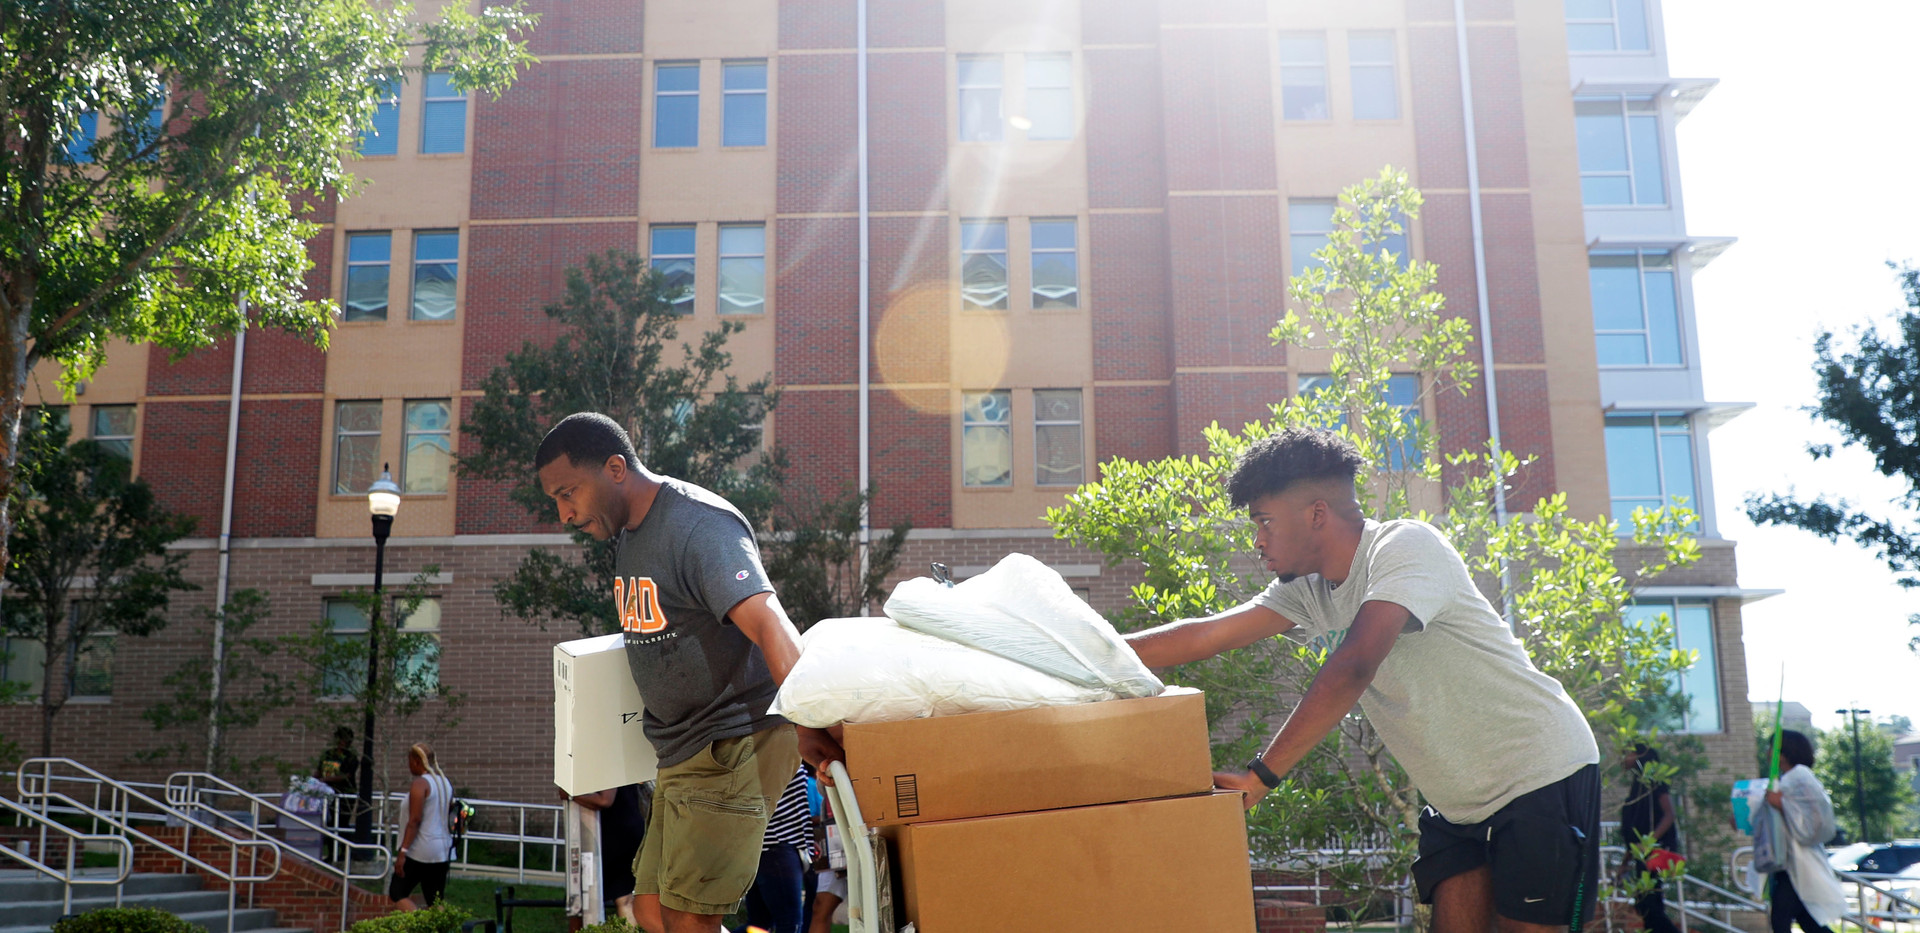 Deadric Hollins, left, and his son Malik Hollins roll a dolly stacked with Malik's belongings as they move him into his freshman dorm room at FAMU Thursday, Aug. 22, 2019.